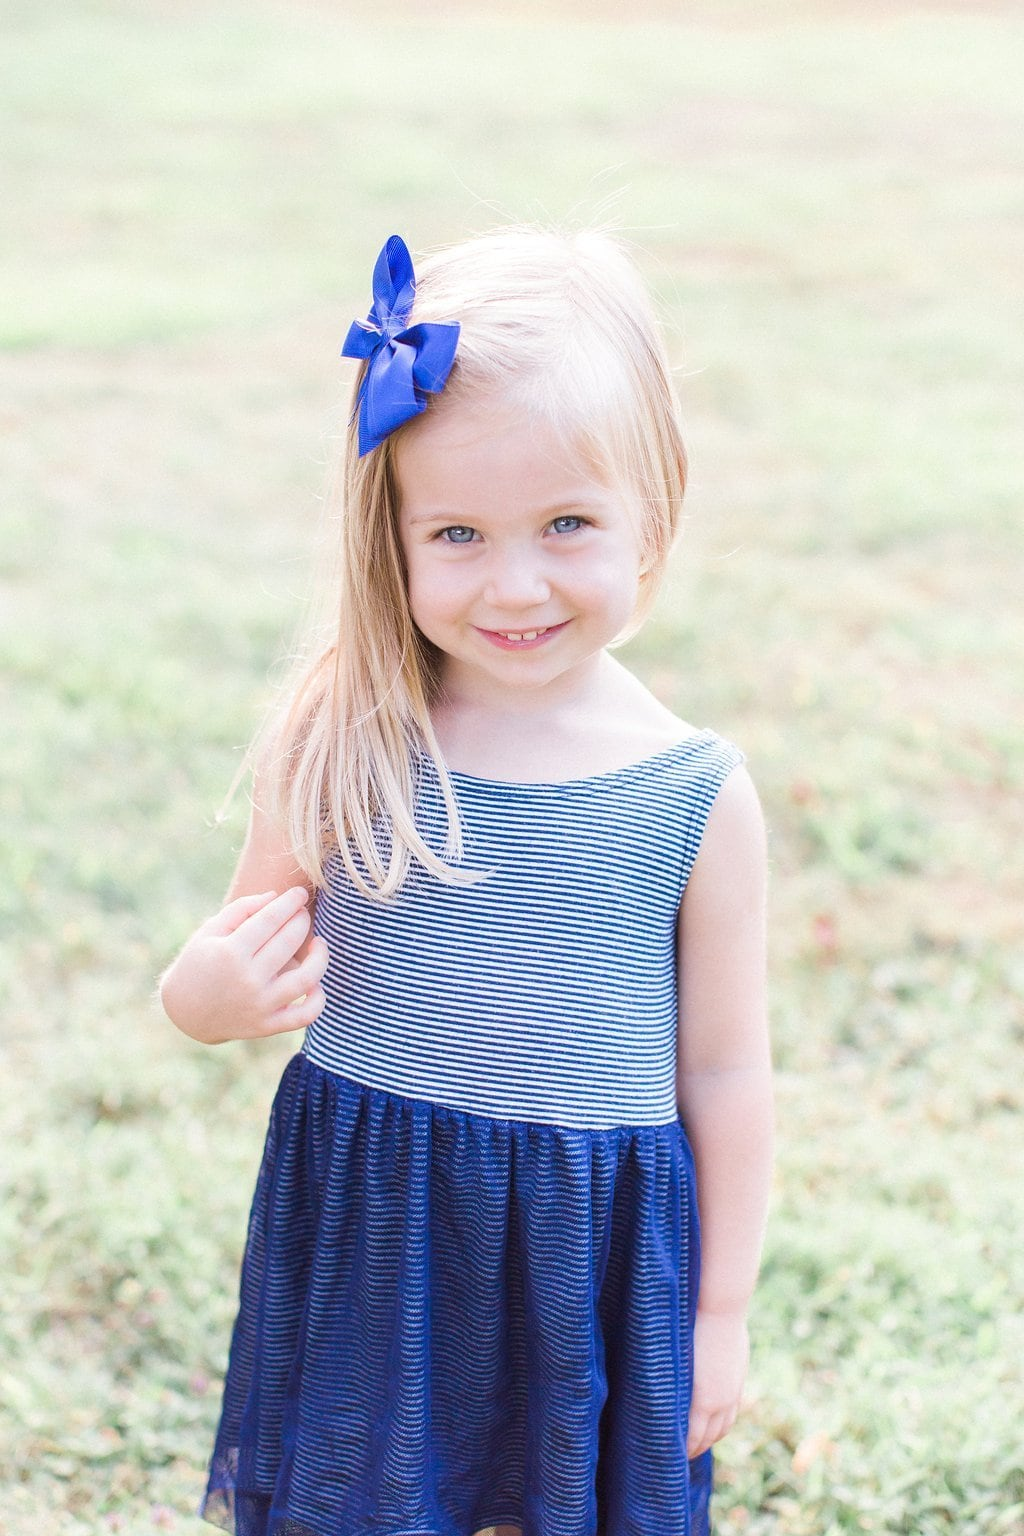 Little girl wearing blue bow and blue striped dress